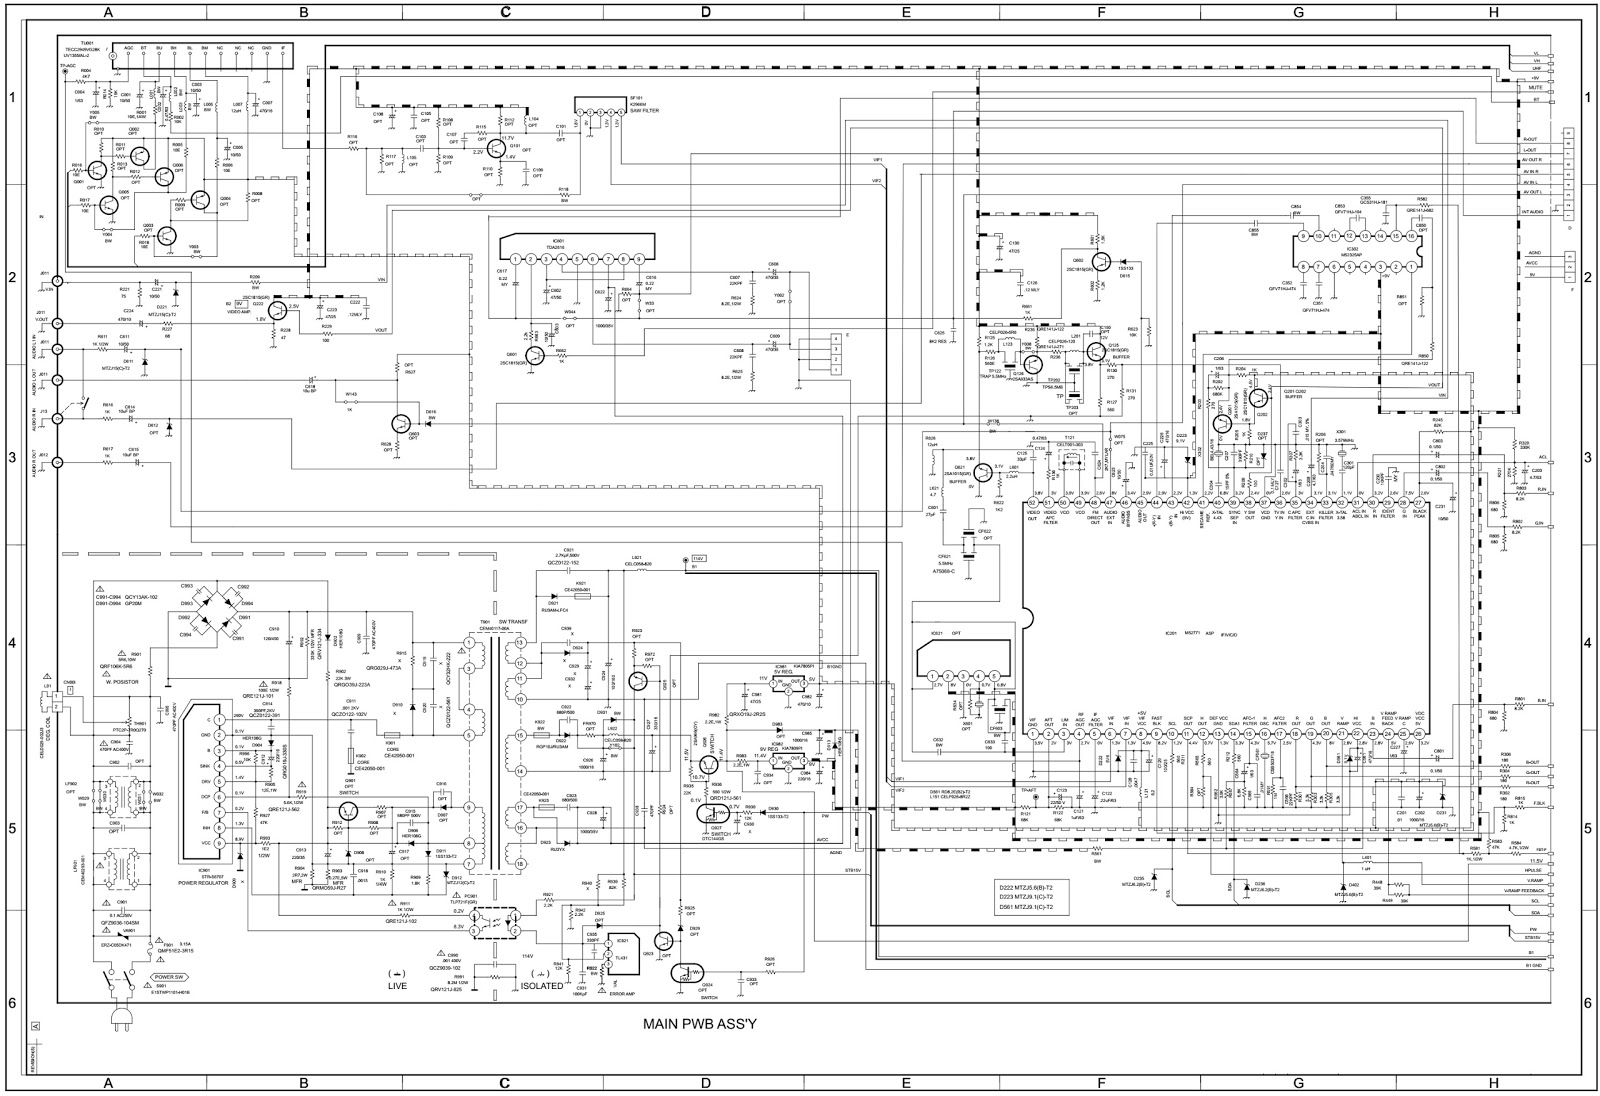 20xs All New Car Release And Reviews Bombardier Rally 200 Wiring Diagram View Here